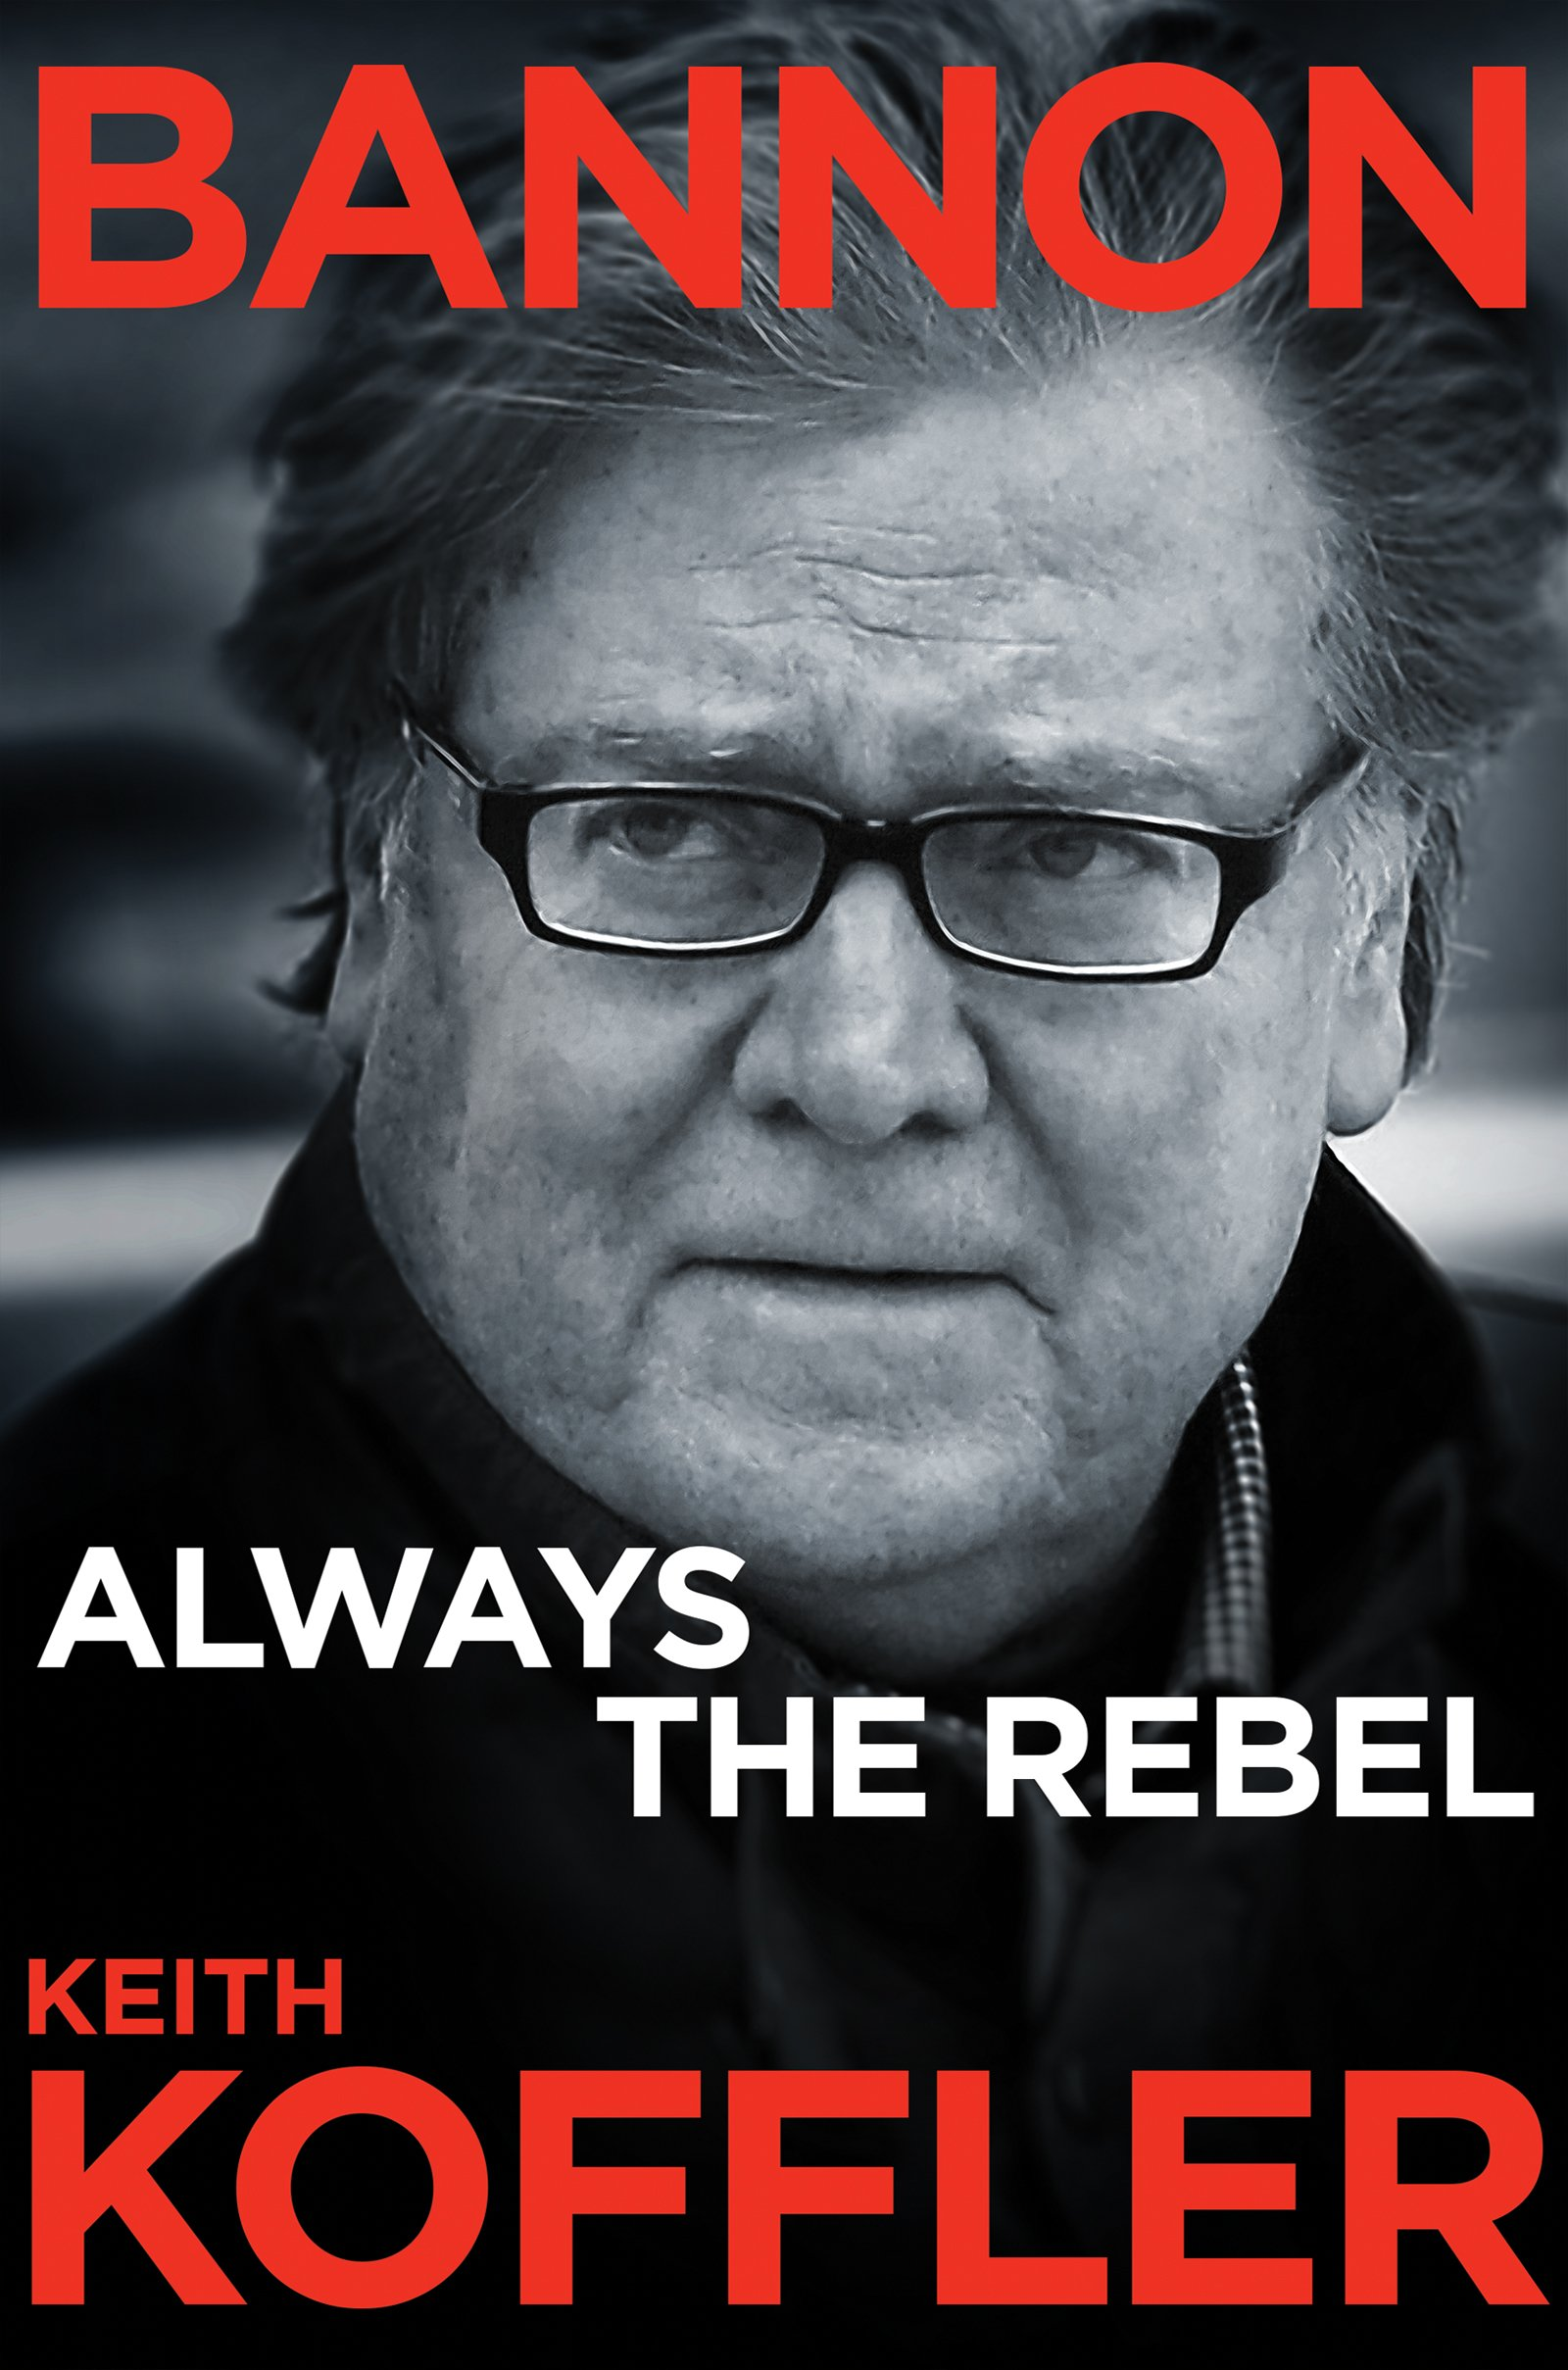 White House Reporter, Keith Koffler w/New Book Bannon, Always the Rebel